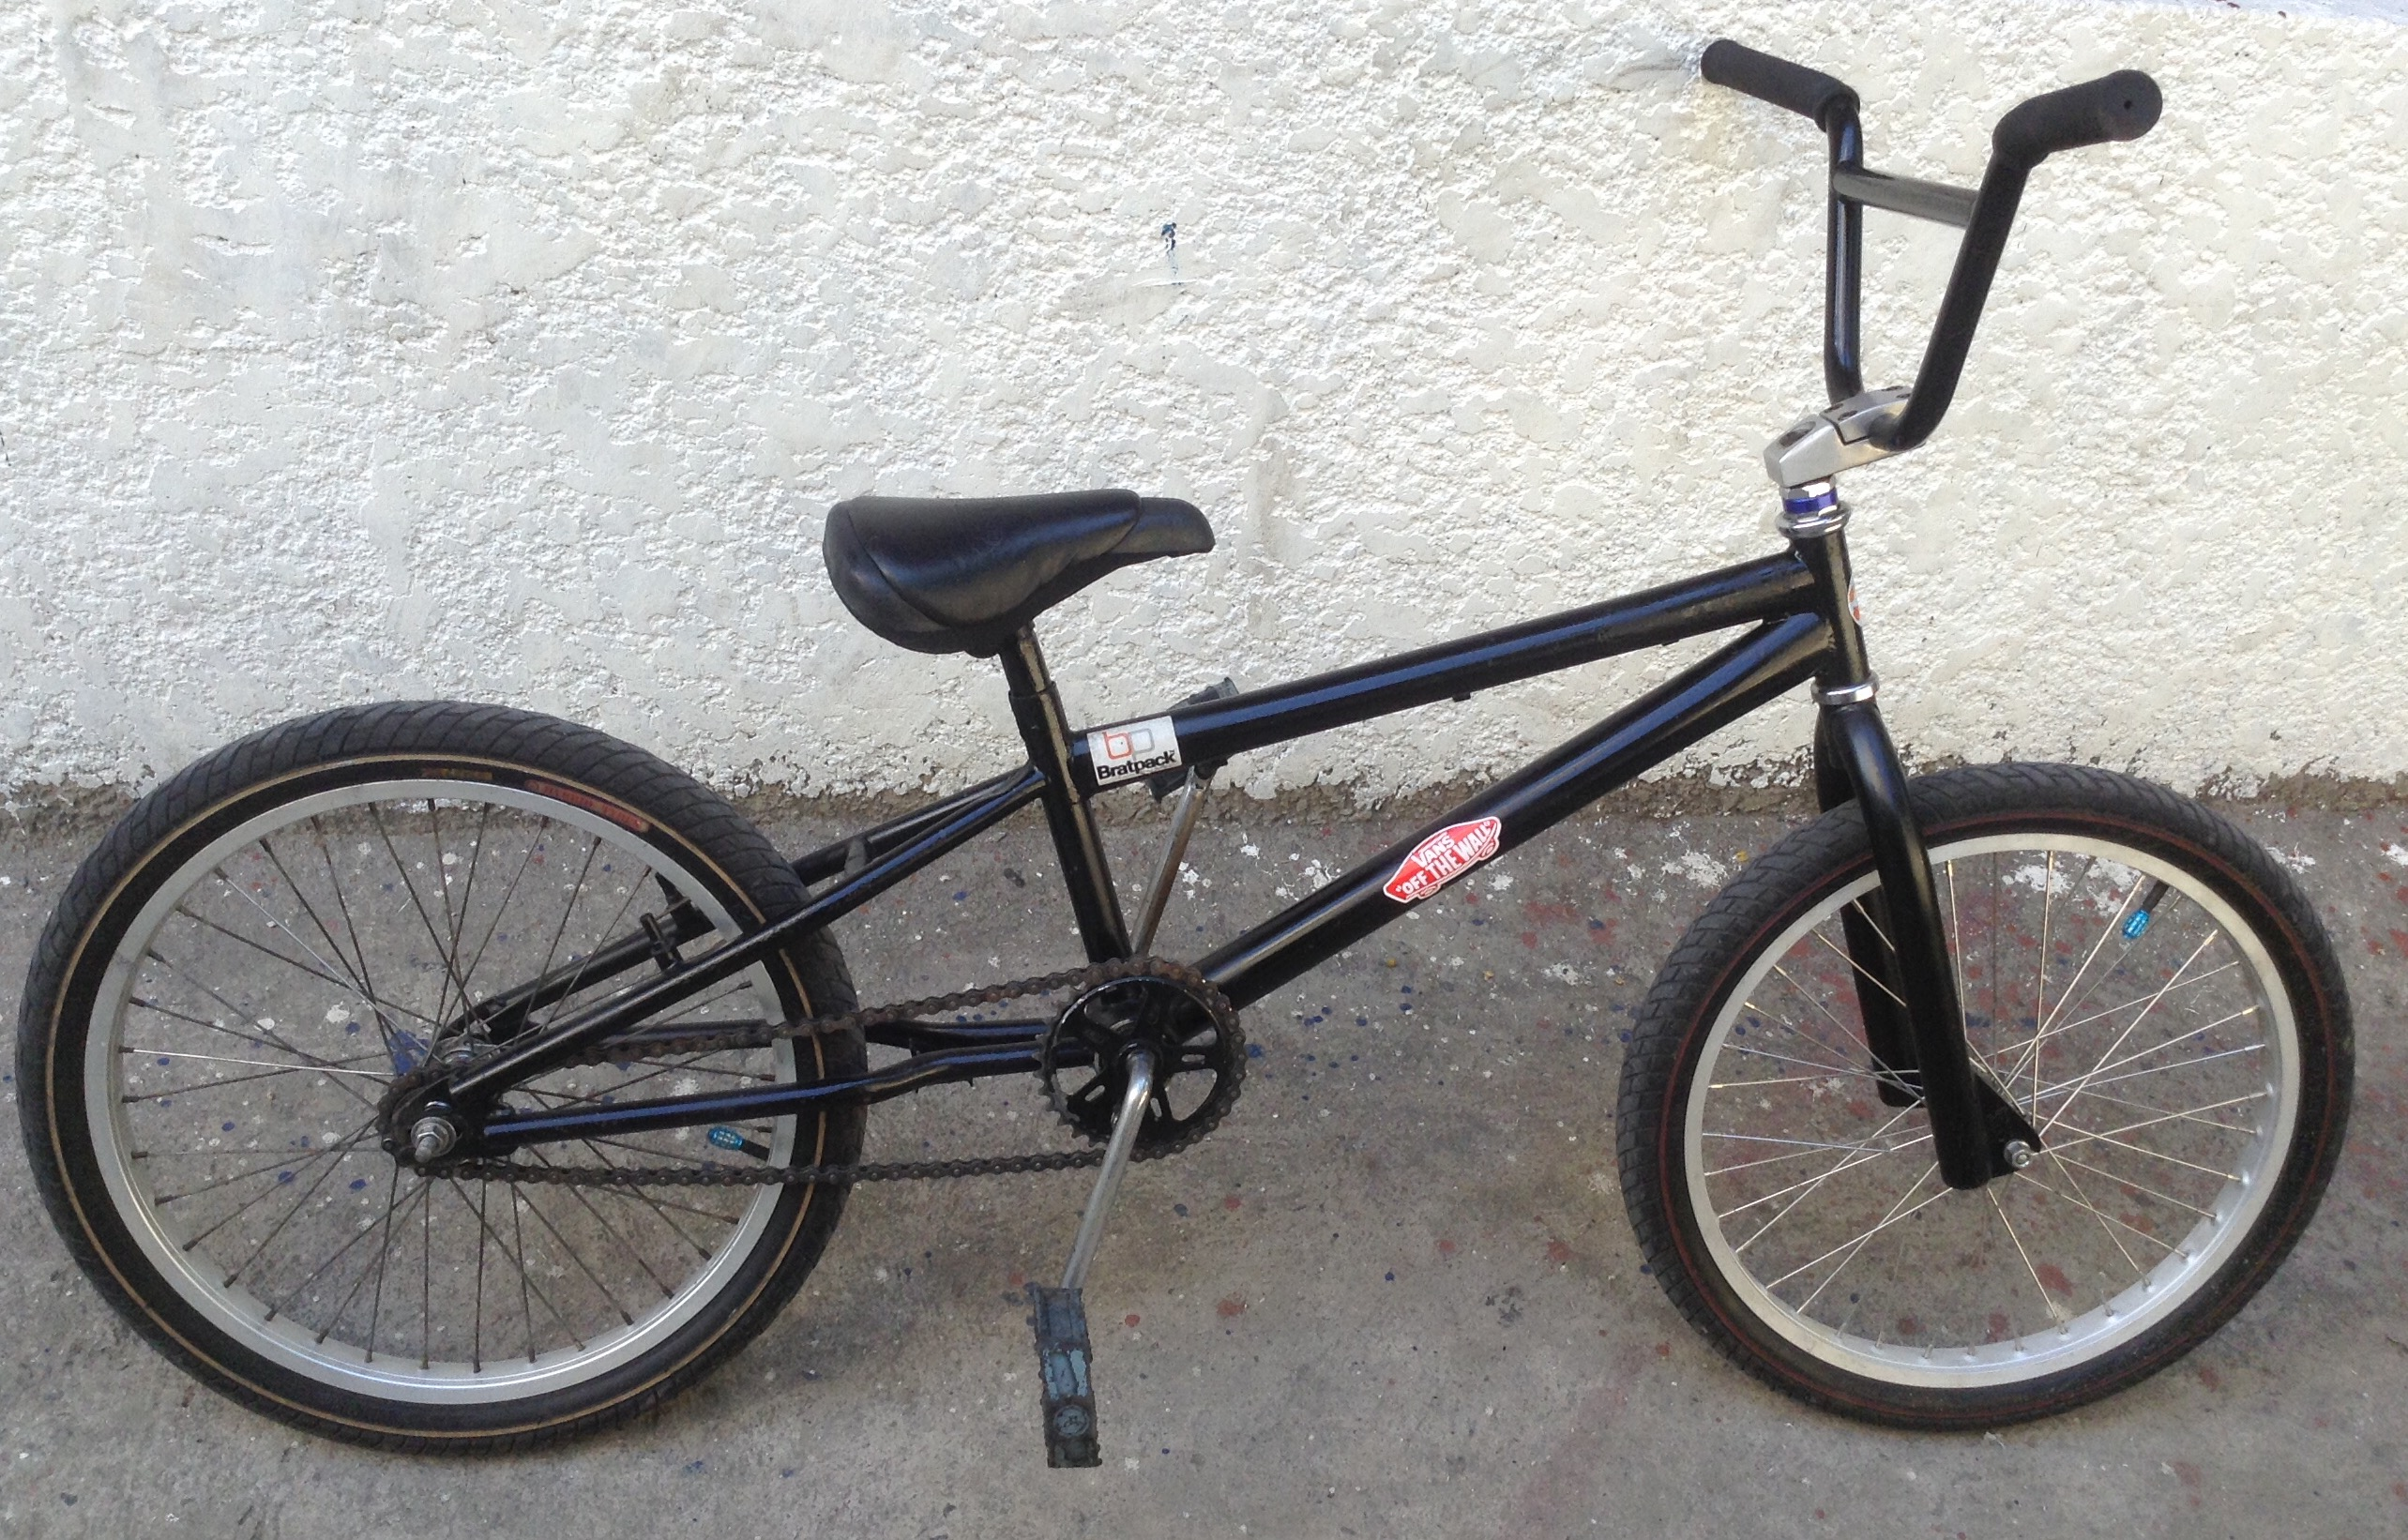 wethepeople bmx bike, Sports, Bicycles on Carousell